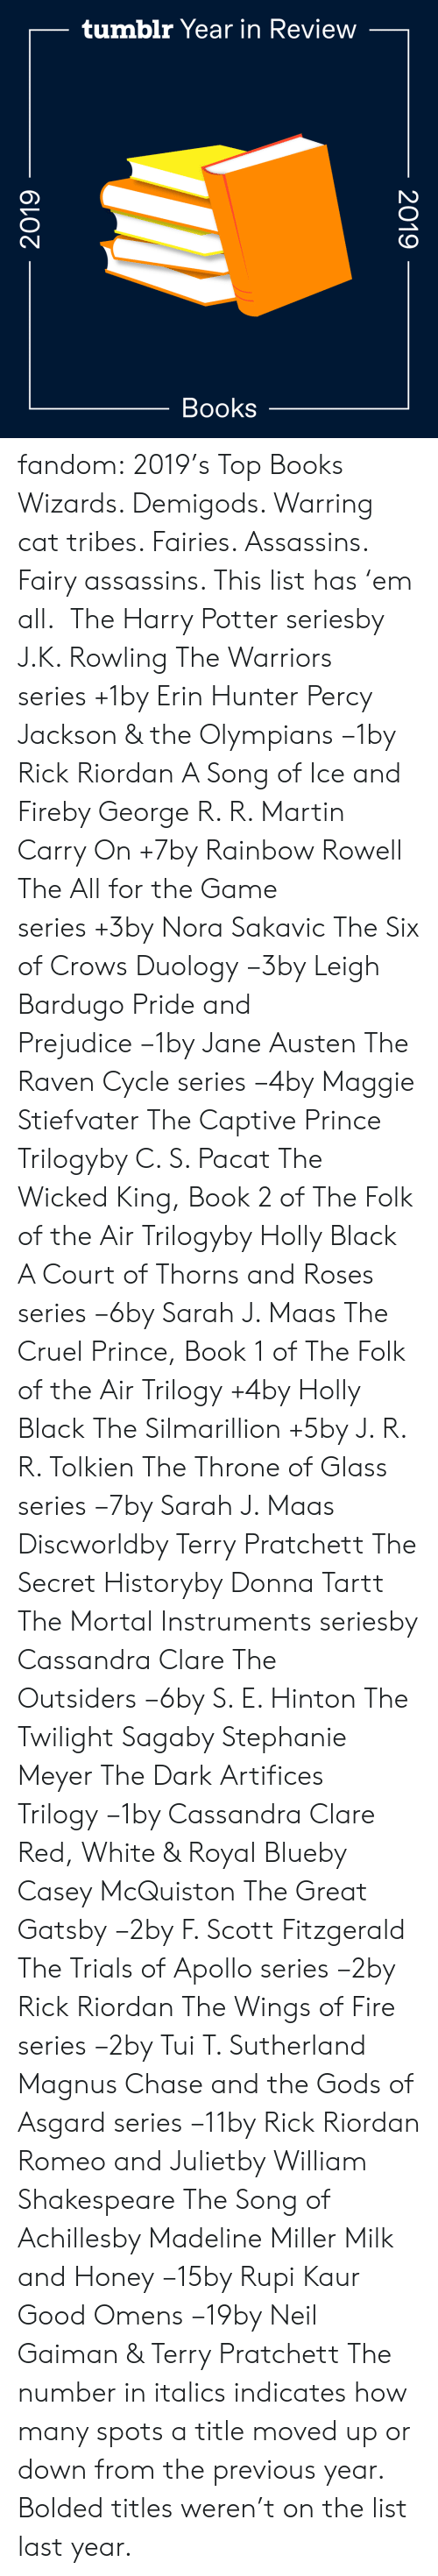 the secret: tumblr Year in Review  Books  2019  2019 fandom:  2019's Top Books  Wizards. Demigods. Warring cat tribes. Fairies. Assassins. Fairy assassins. This list has 'em all.   The Harry Potter seriesby J.K. Rowling  The Warriors series +1by Erin Hunter  Percy Jackson & the Olympians −1by Rick Riordan  A Song of Ice and Fireby George R. R. Martin  Carry On +7by Rainbow Rowell  The All for the Game series +3by Nora Sakavic  The Six of Crows Duology −3by Leigh Bardugo  Pride and Prejudice −1by Jane Austen  The Raven Cycle series −4by Maggie Stiefvater  The Captive Prince Trilogyby C. S. Pacat  The Wicked King, Book 2 of The Folk of the Air Trilogyby Holly Black  A Court of Thorns and Roses series −6by Sarah J. Maas  The Cruel Prince, Book 1 of The Folk of the Air Trilogy +4by Holly Black  The Silmarillion +5by J. R. R. Tolkien  The Throne of Glass series −7by Sarah J. Maas  Discworldby Terry Pratchett  The Secret Historyby Donna Tartt  The Mortal Instruments seriesby Cassandra Clare  The Outsiders −6by S. E. Hinton  The Twilight Sagaby Stephanie Meyer  The Dark Artifices Trilogy −1by Cassandra Clare  Red, White & Royal Blueby Casey McQuiston  The Great Gatsby −2by F. Scott Fitzgerald  The Trials of Apollo series −2by Rick Riordan  The Wings of Fire series −2by Tui T. Sutherland  Magnus Chase and the Gods of Asgard series −11by Rick Riordan  Romeo and Julietby William Shakespeare  The Song of Achillesby Madeline Miller  Milk and Honey −15by Rupi Kaur  Good Omens −19by Neil Gaiman & Terry Pratchett The number in italics indicates how many spots a title moved up or down from the previous year. Bolded titles weren't on the list last year.